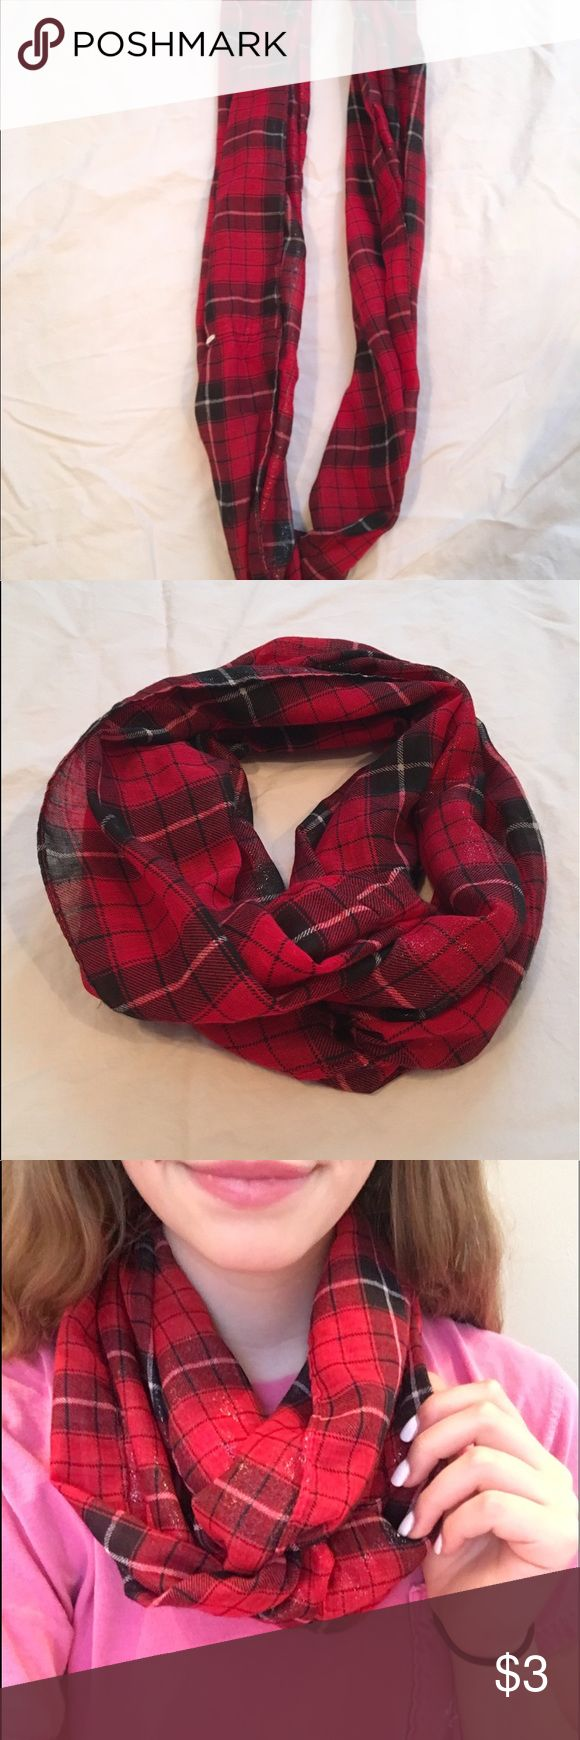 Red plaid scarf Great condition! Perfect for the winter time Accessories Scarves & Wraps